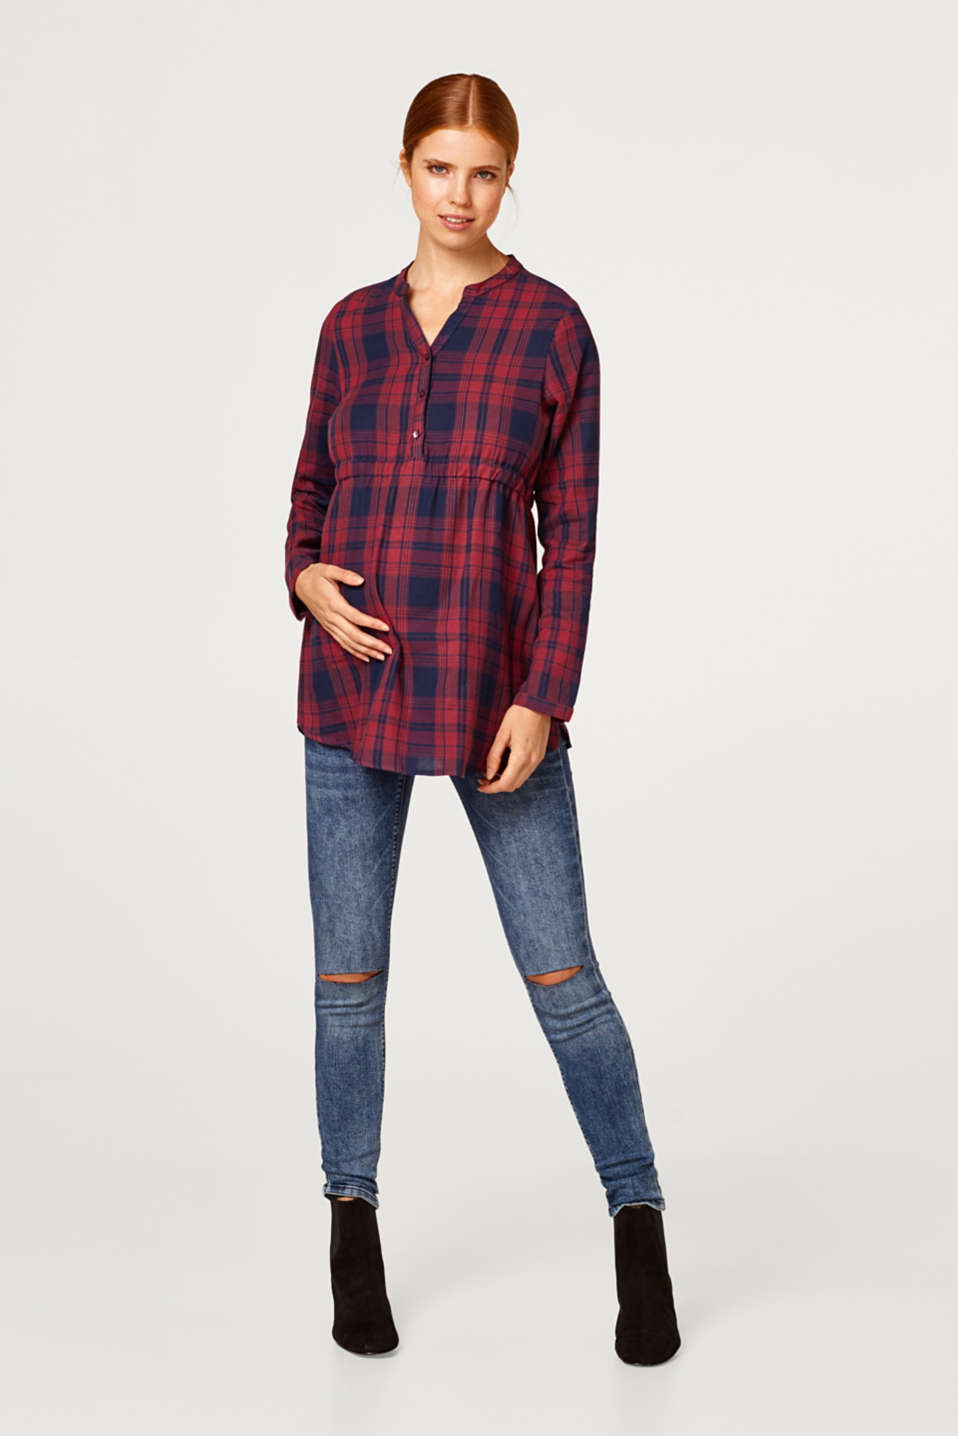 Empire blouse with checks, 100% cotton